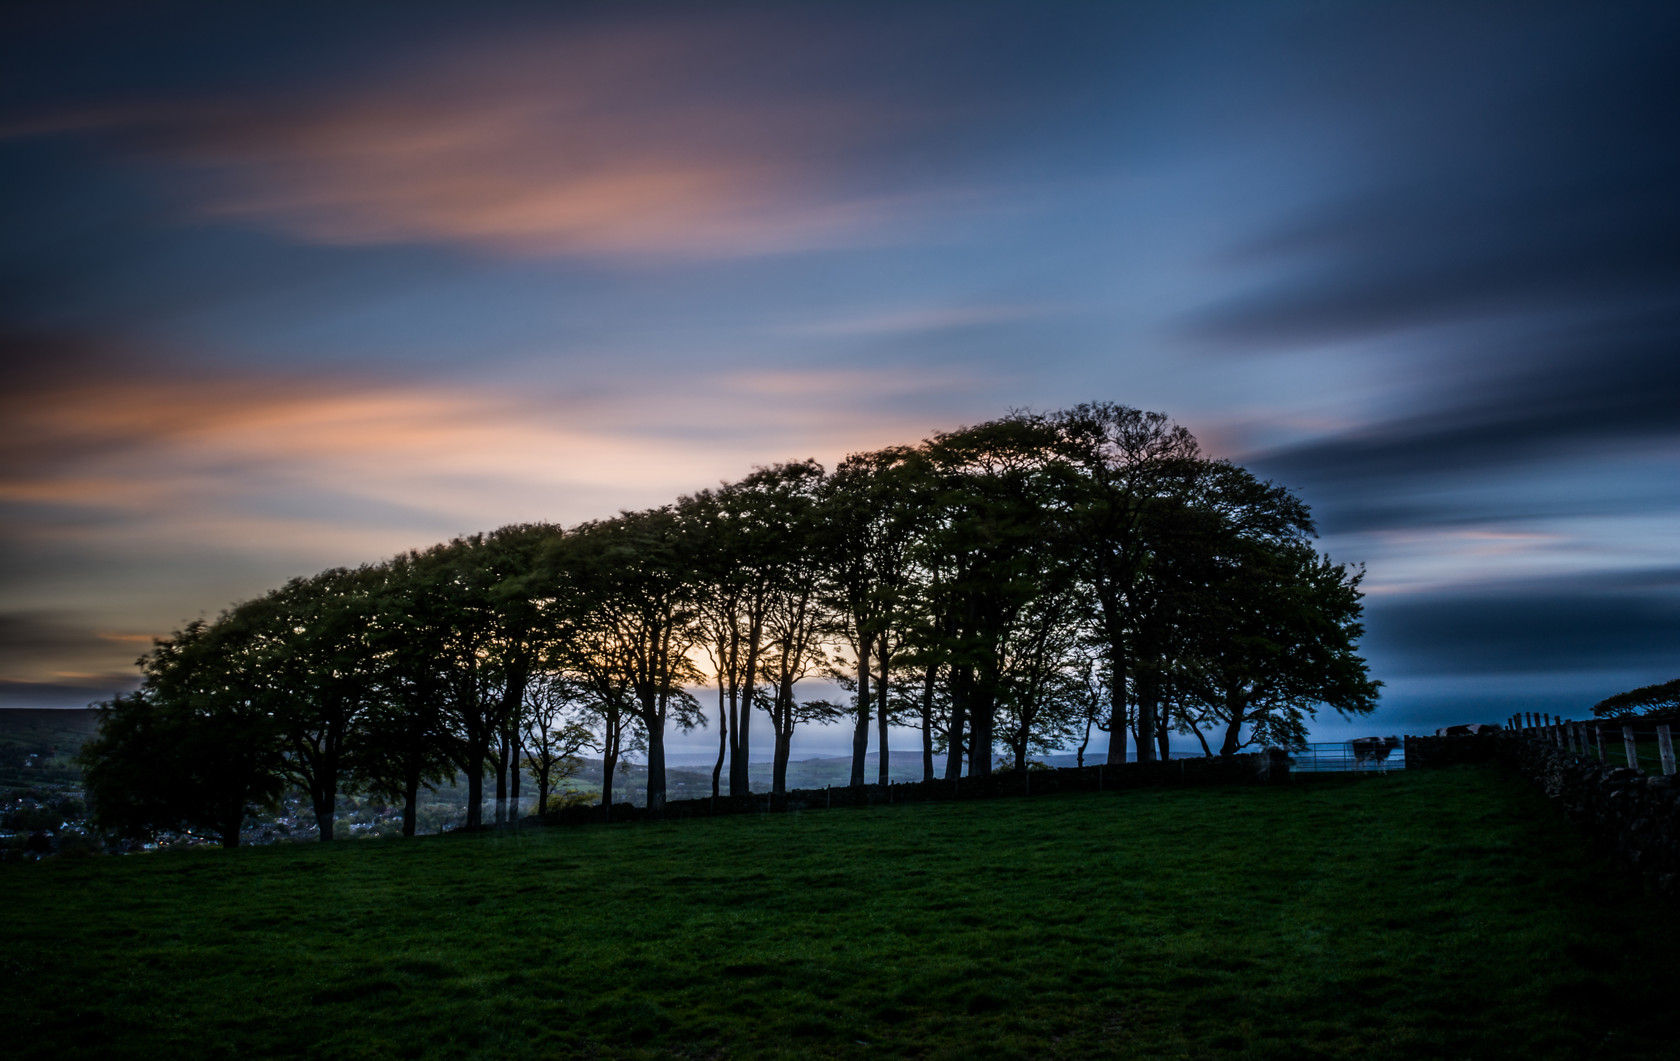 tree line at dusk (ref av 16) 